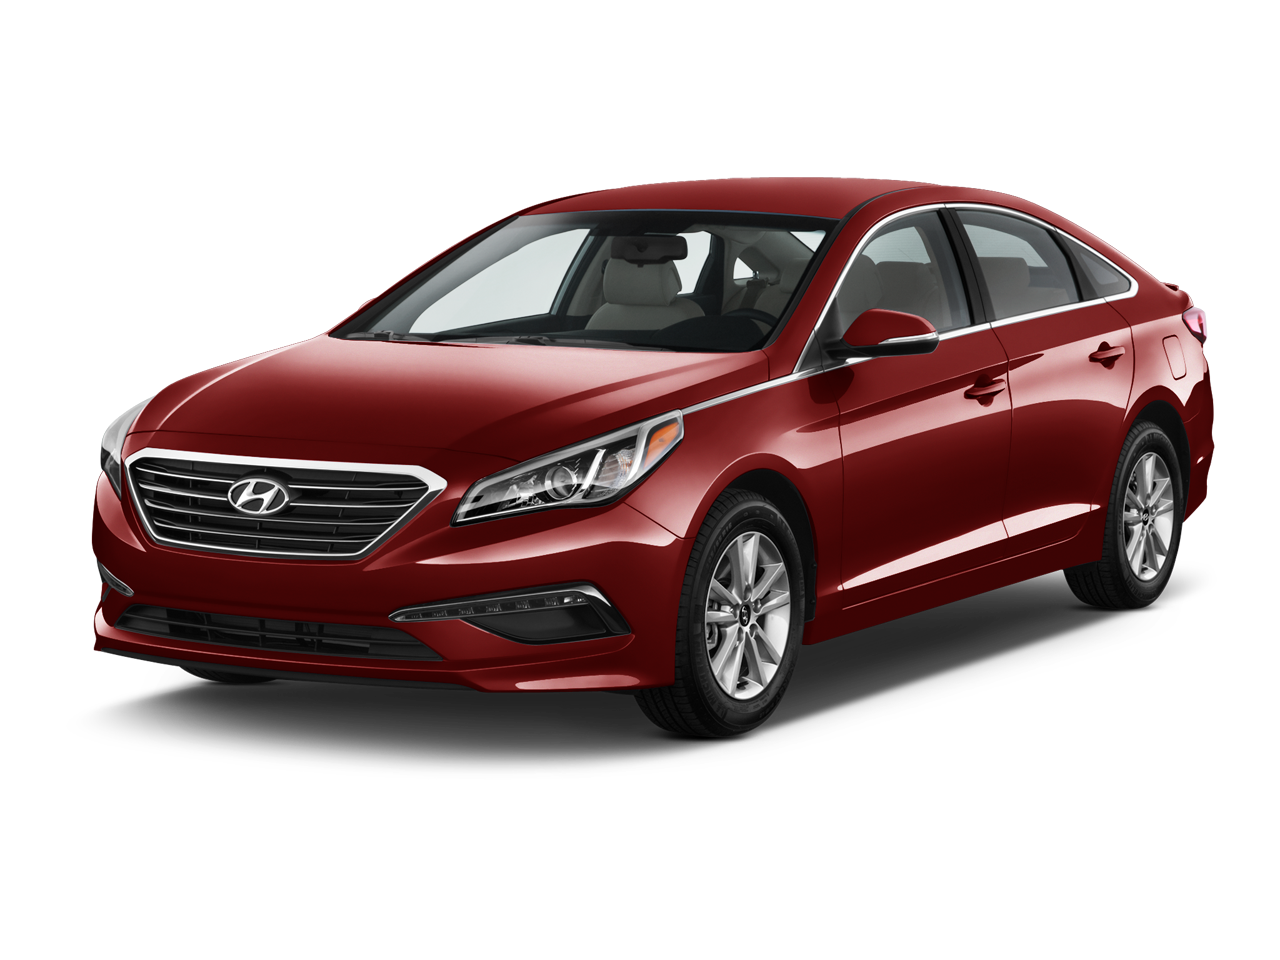 2017 hyundai sonata in hicksville ny. Black Bedroom Furniture Sets. Home Design Ideas